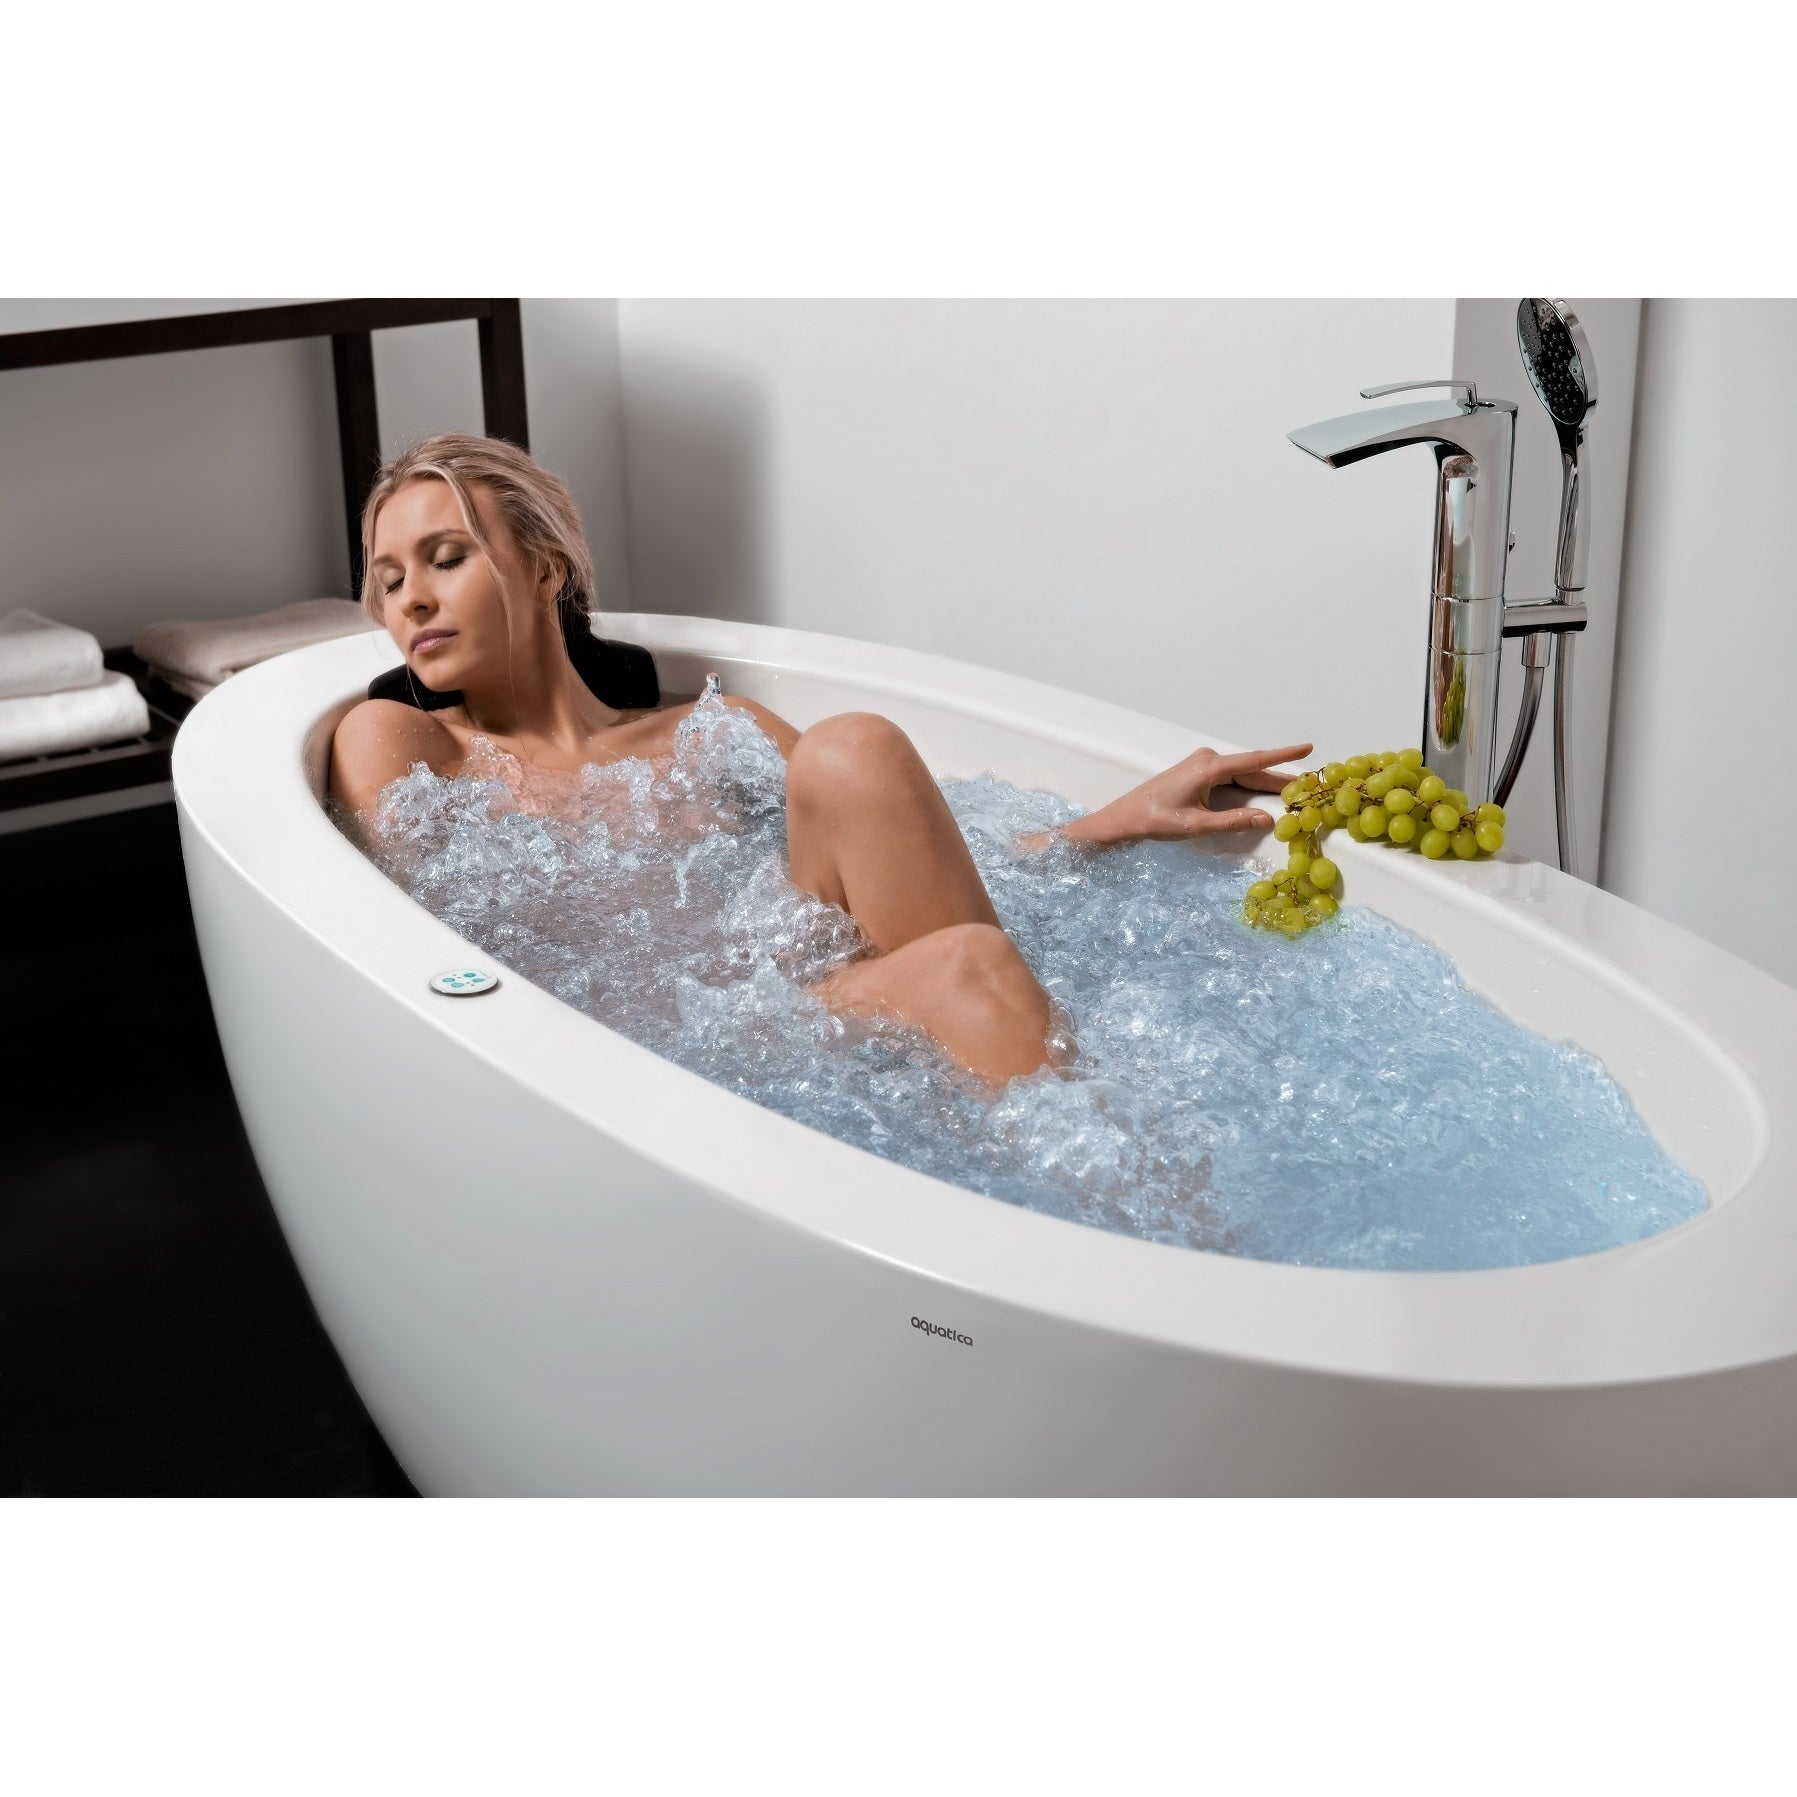 Aquatica Purescape 174B Relax Air Massage Bathtub - Free Shipping ...